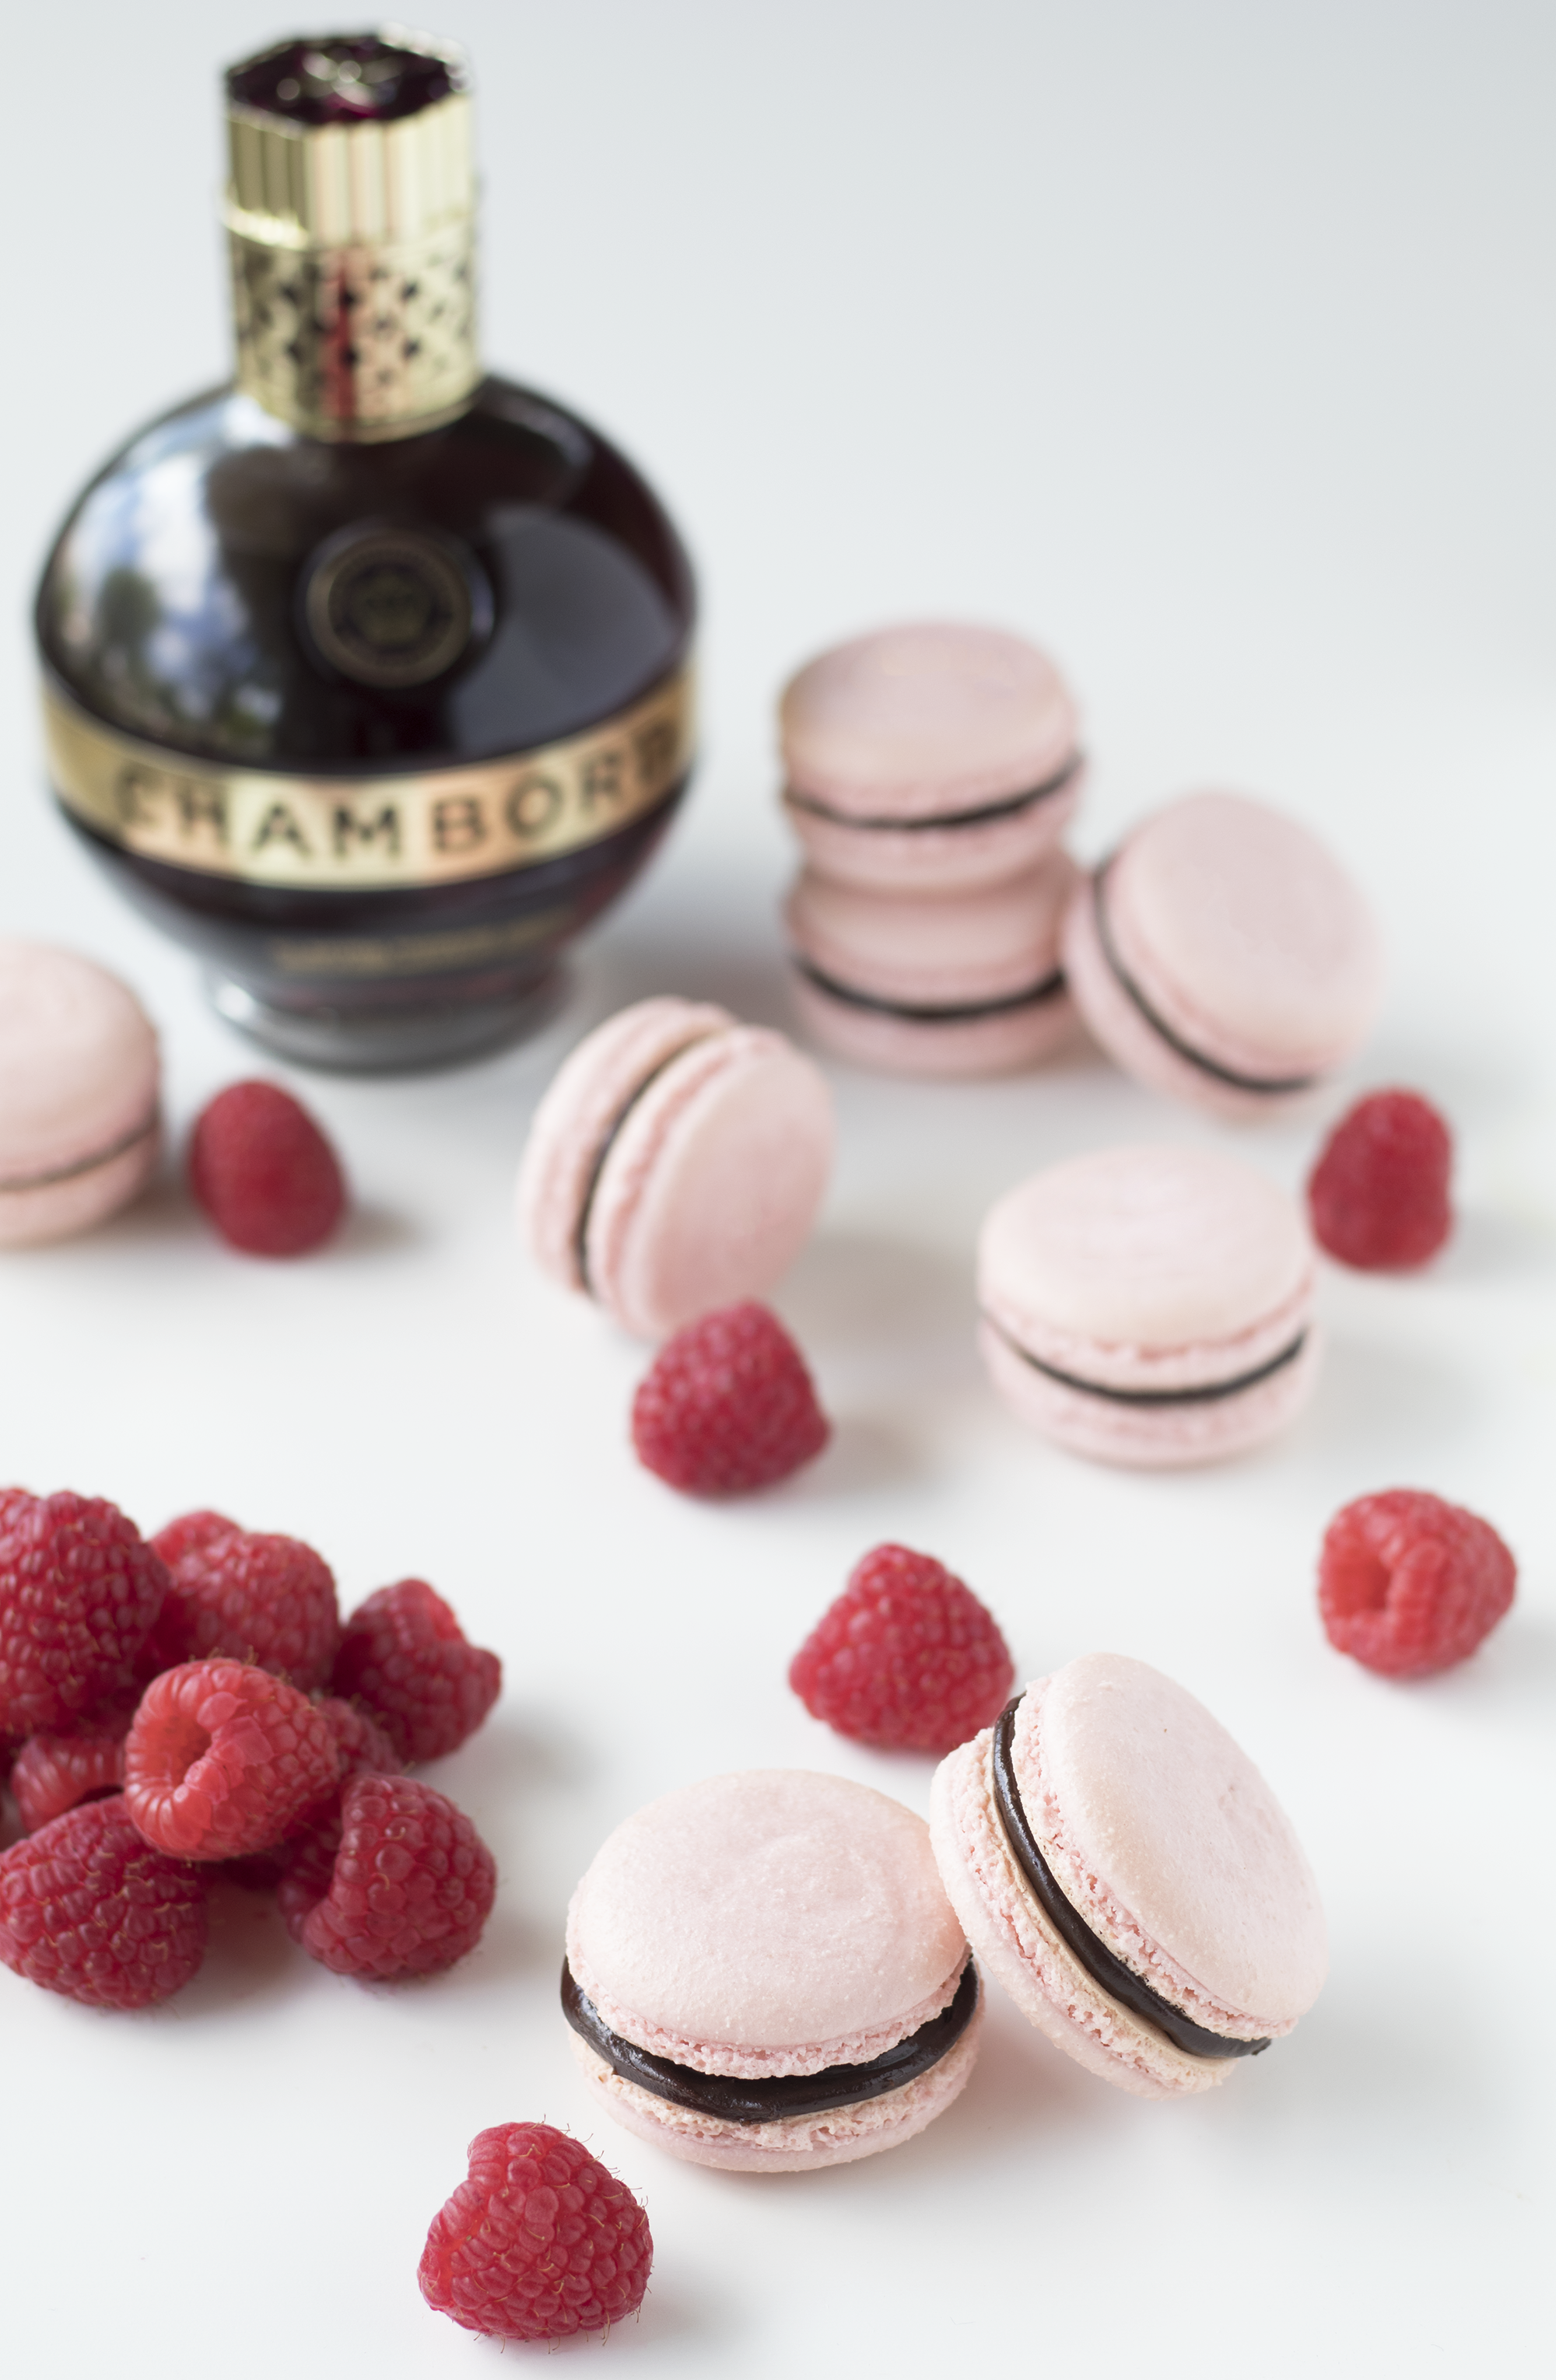 Chambord Macarons | Sarah Makes Stuff